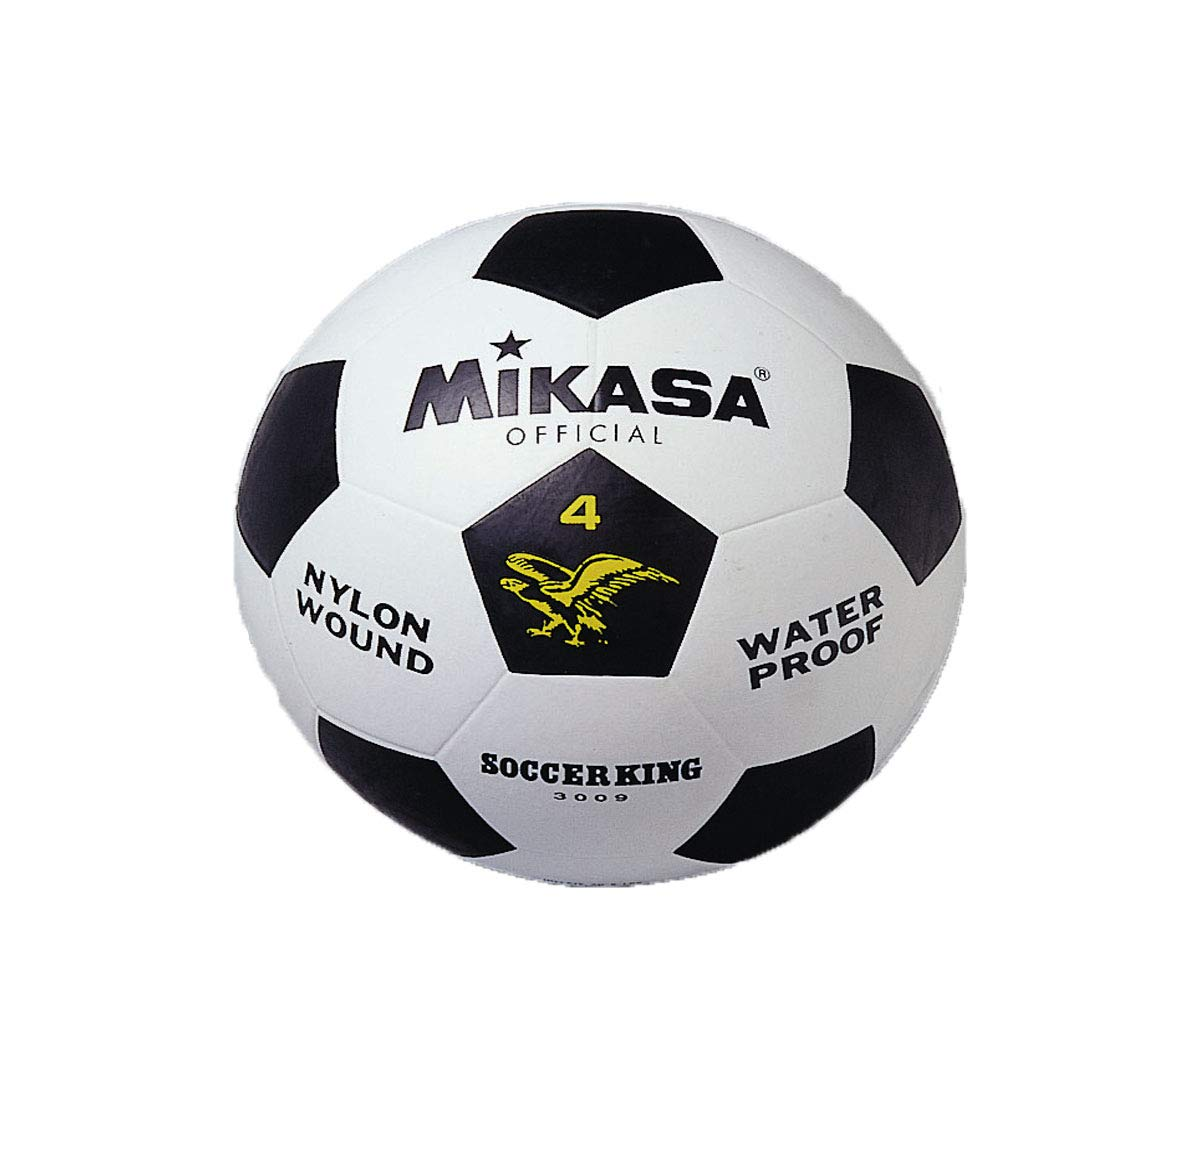 MIKASA 3009 - Balón de fútbol, Color Blanco/Negro, Talla 4: Amazon ...